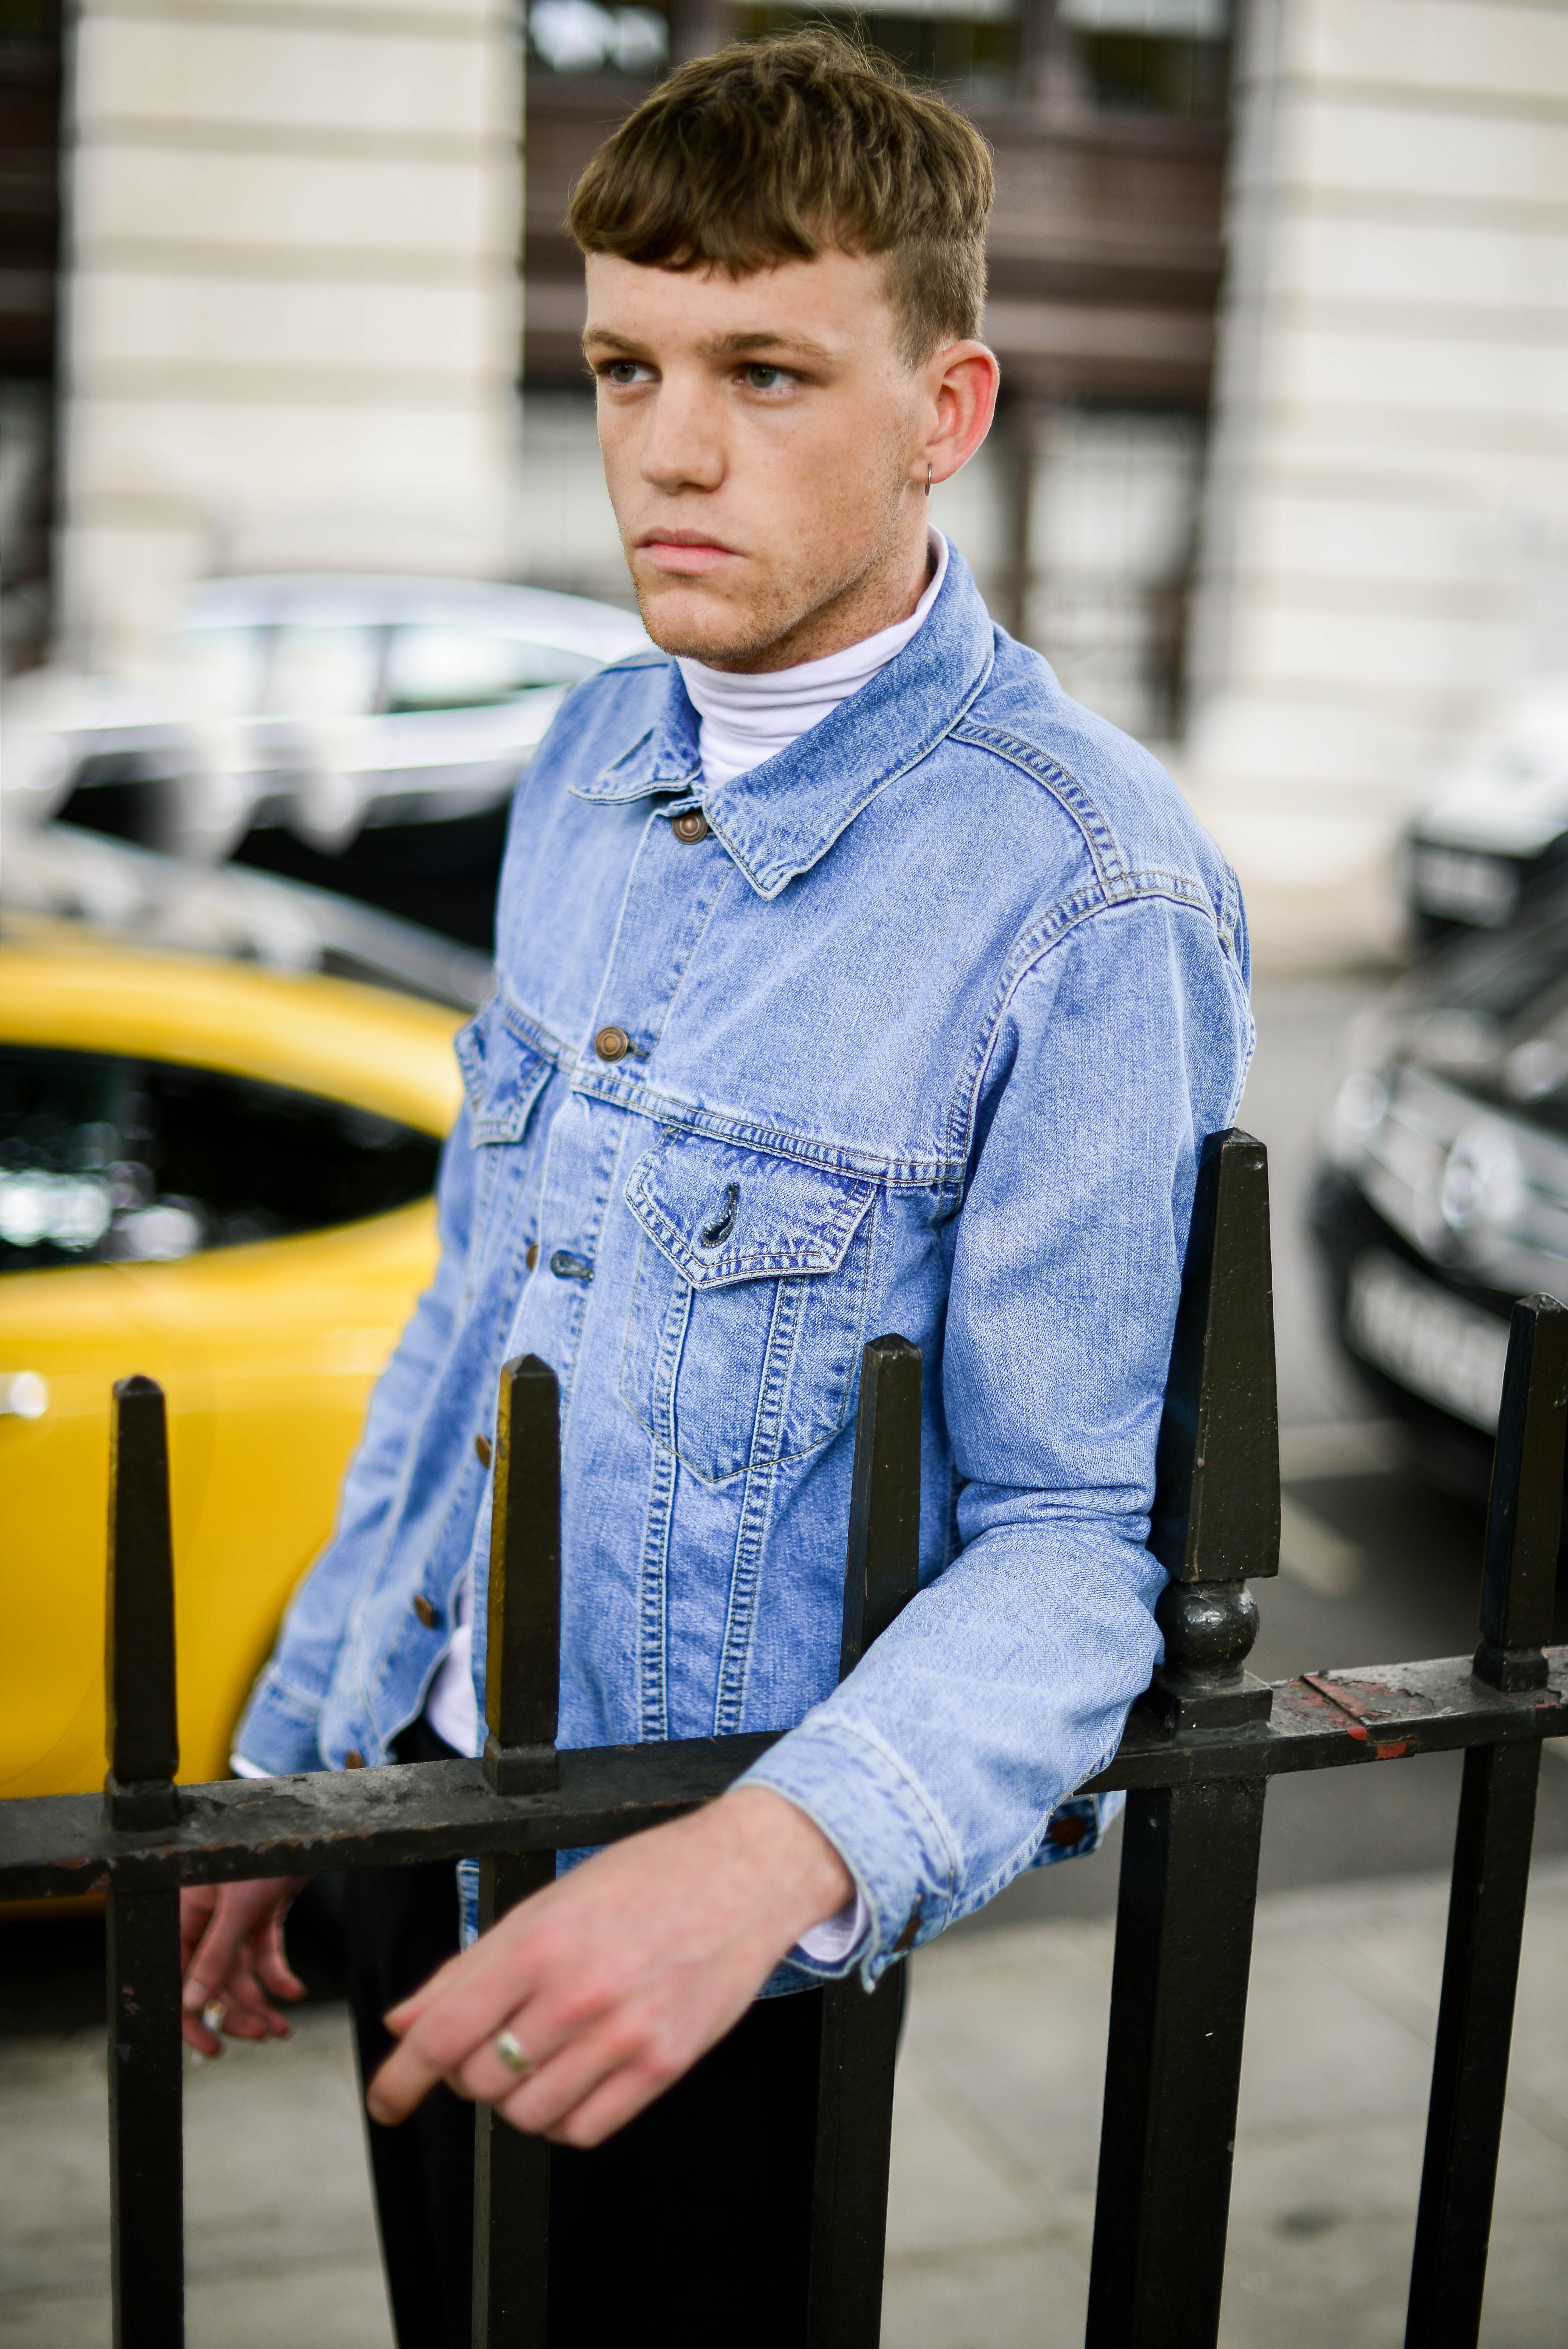 452524db What Would You Wear With A Denim Shirt - DREAMWORKS